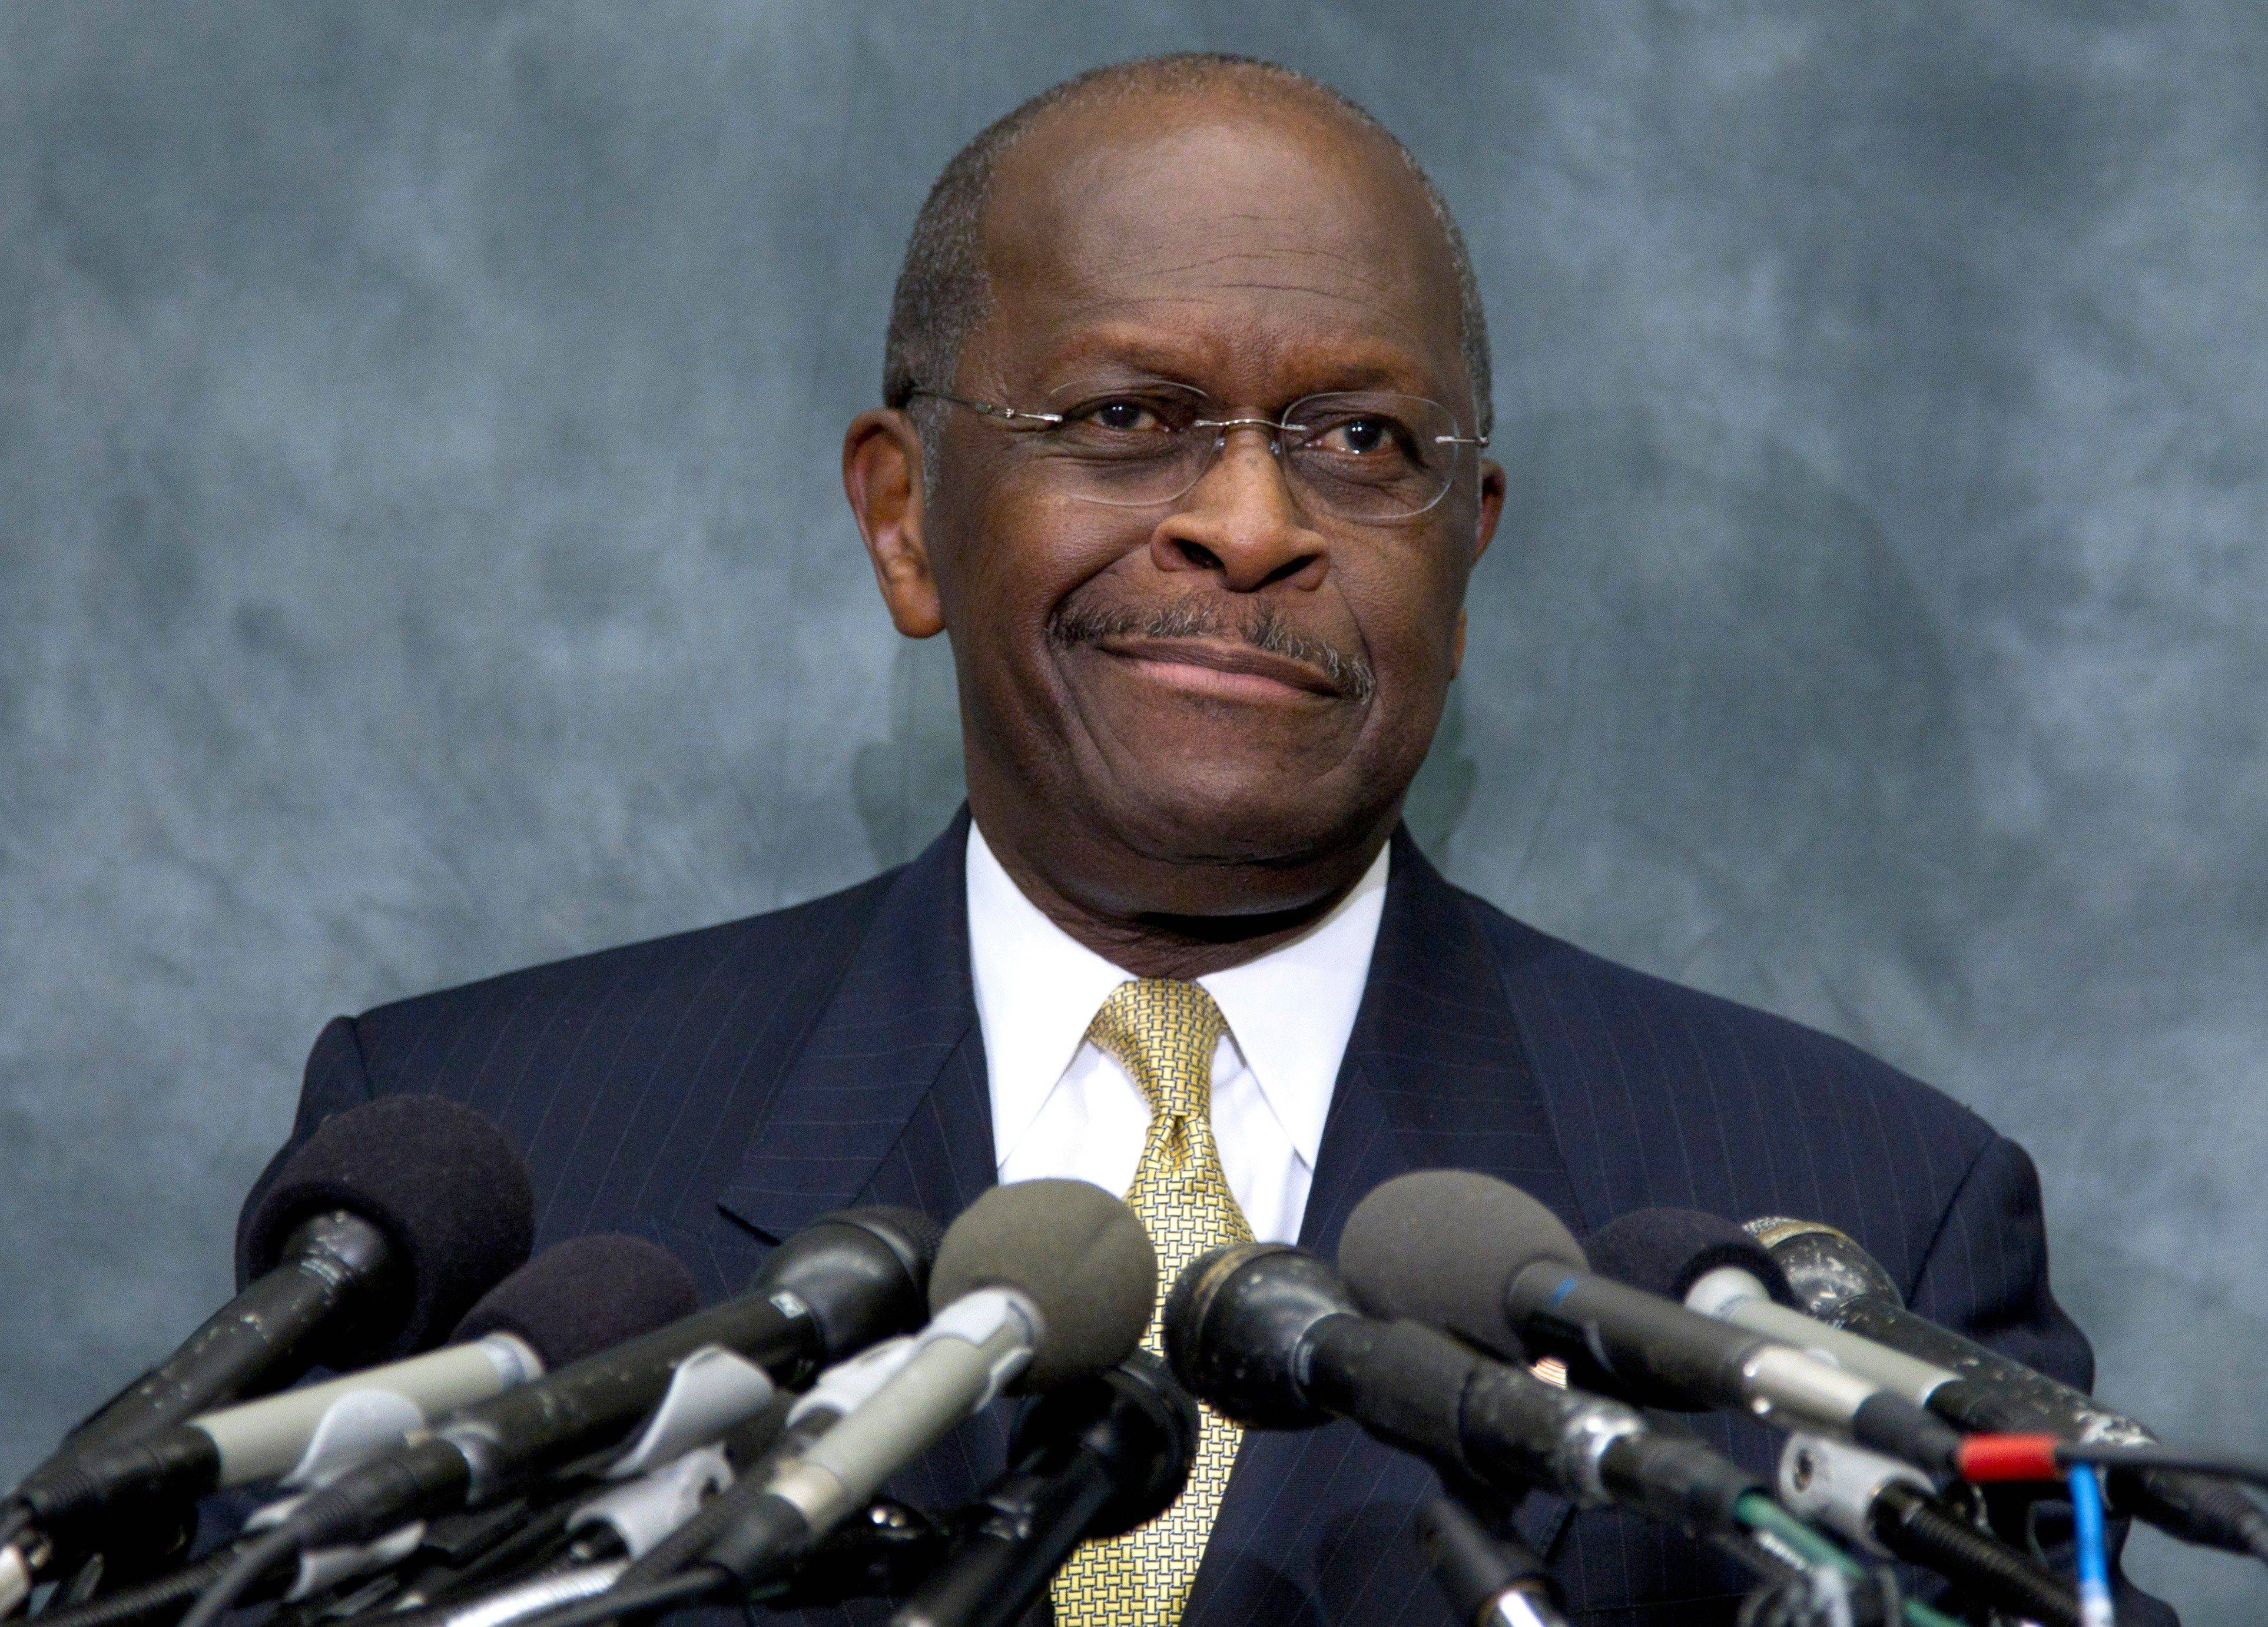 Cain blames media, Perry for furor over harassment allegations